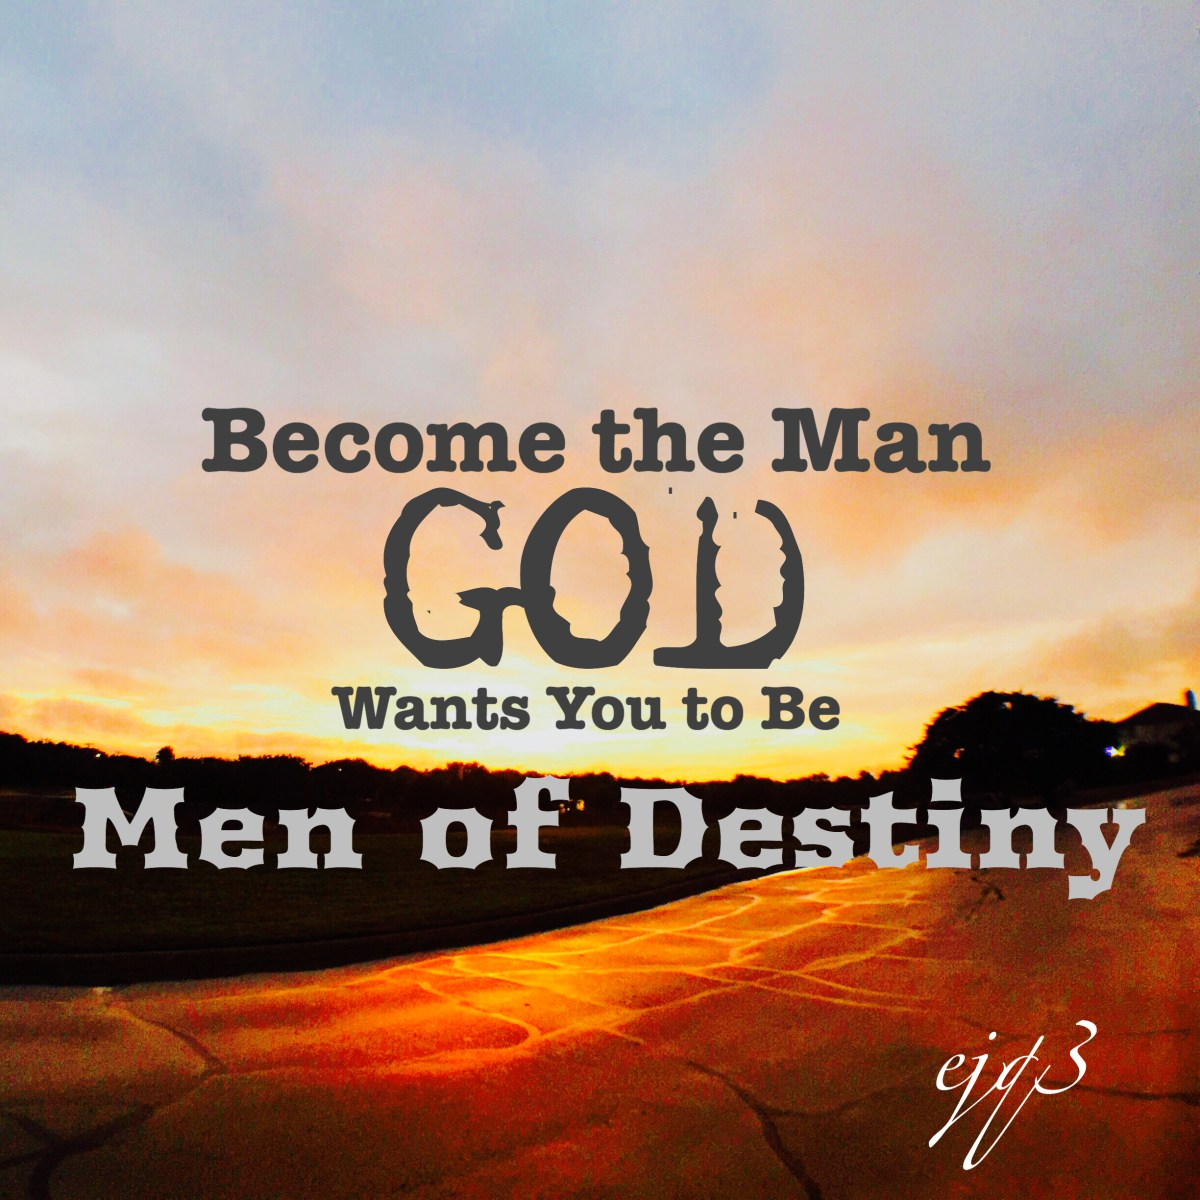 Men Of Destiny - Become the Man God Wants You to Be!